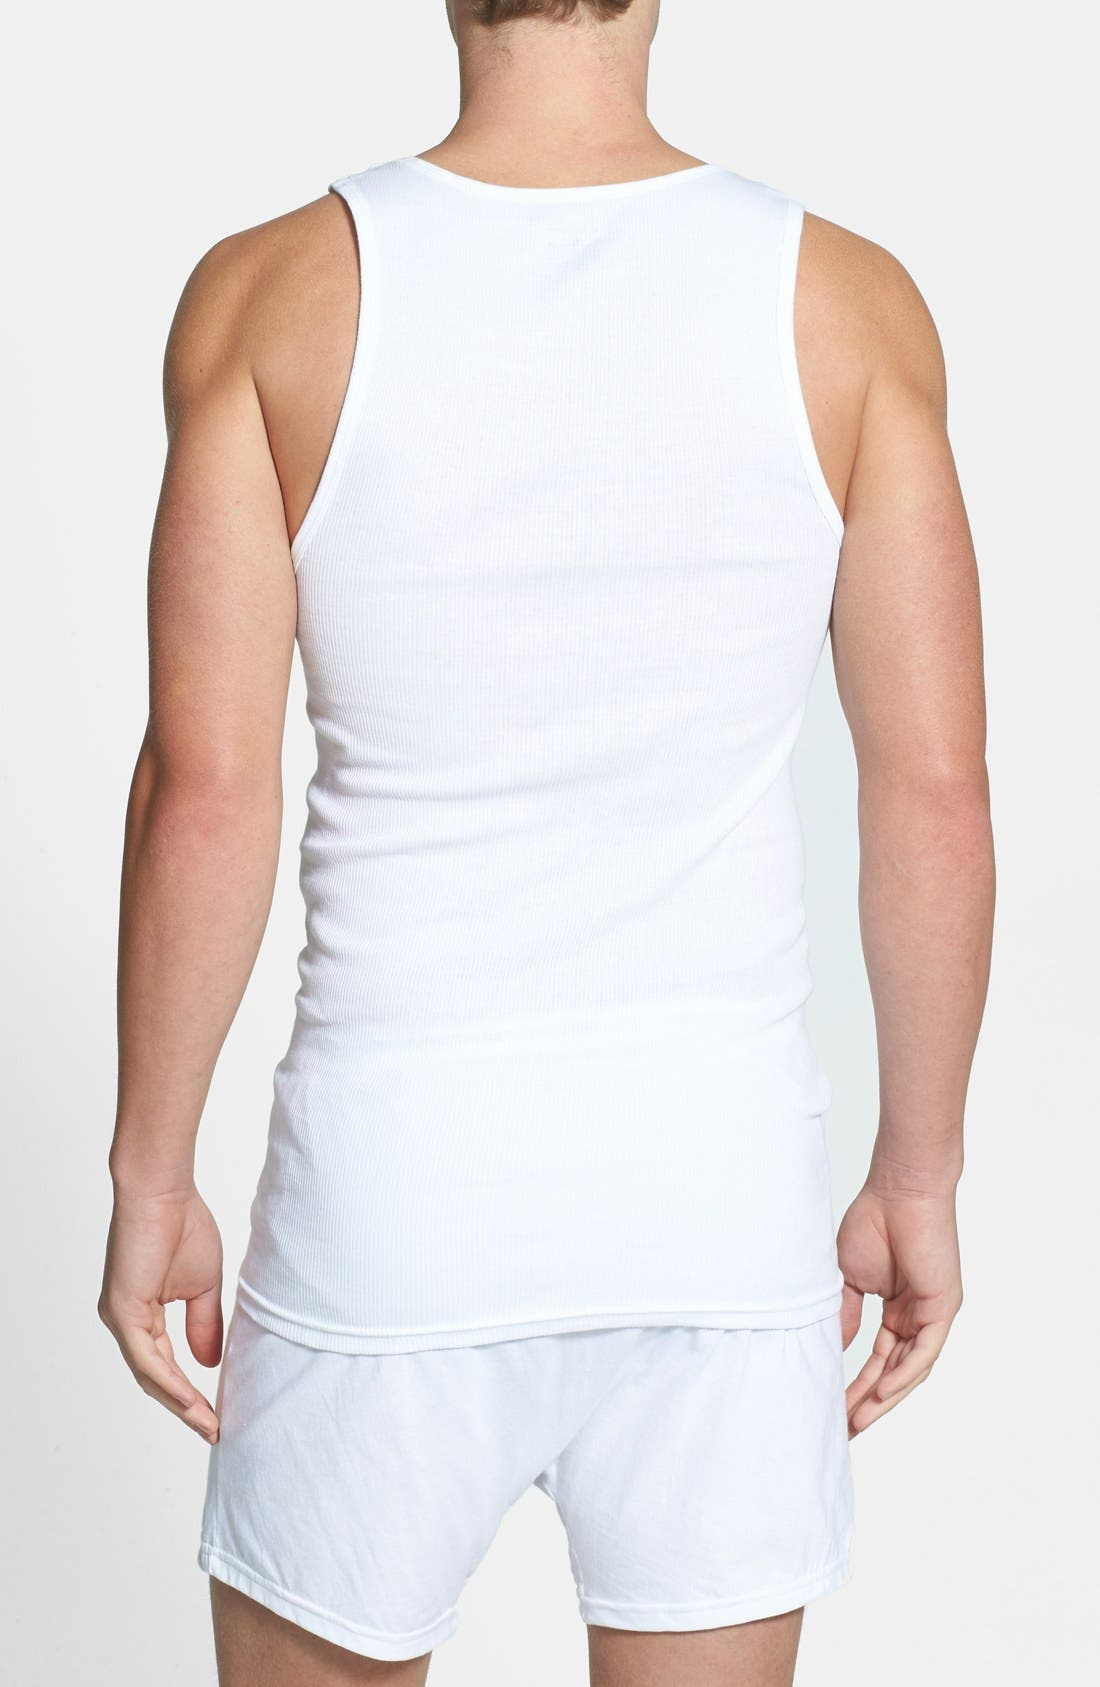 NORDSTROM MEN'S SHOP, 4-Pack Supima<sup>®</sup> Cotton Athletic Tanks, Alternate thumbnail 2, color, WHITE